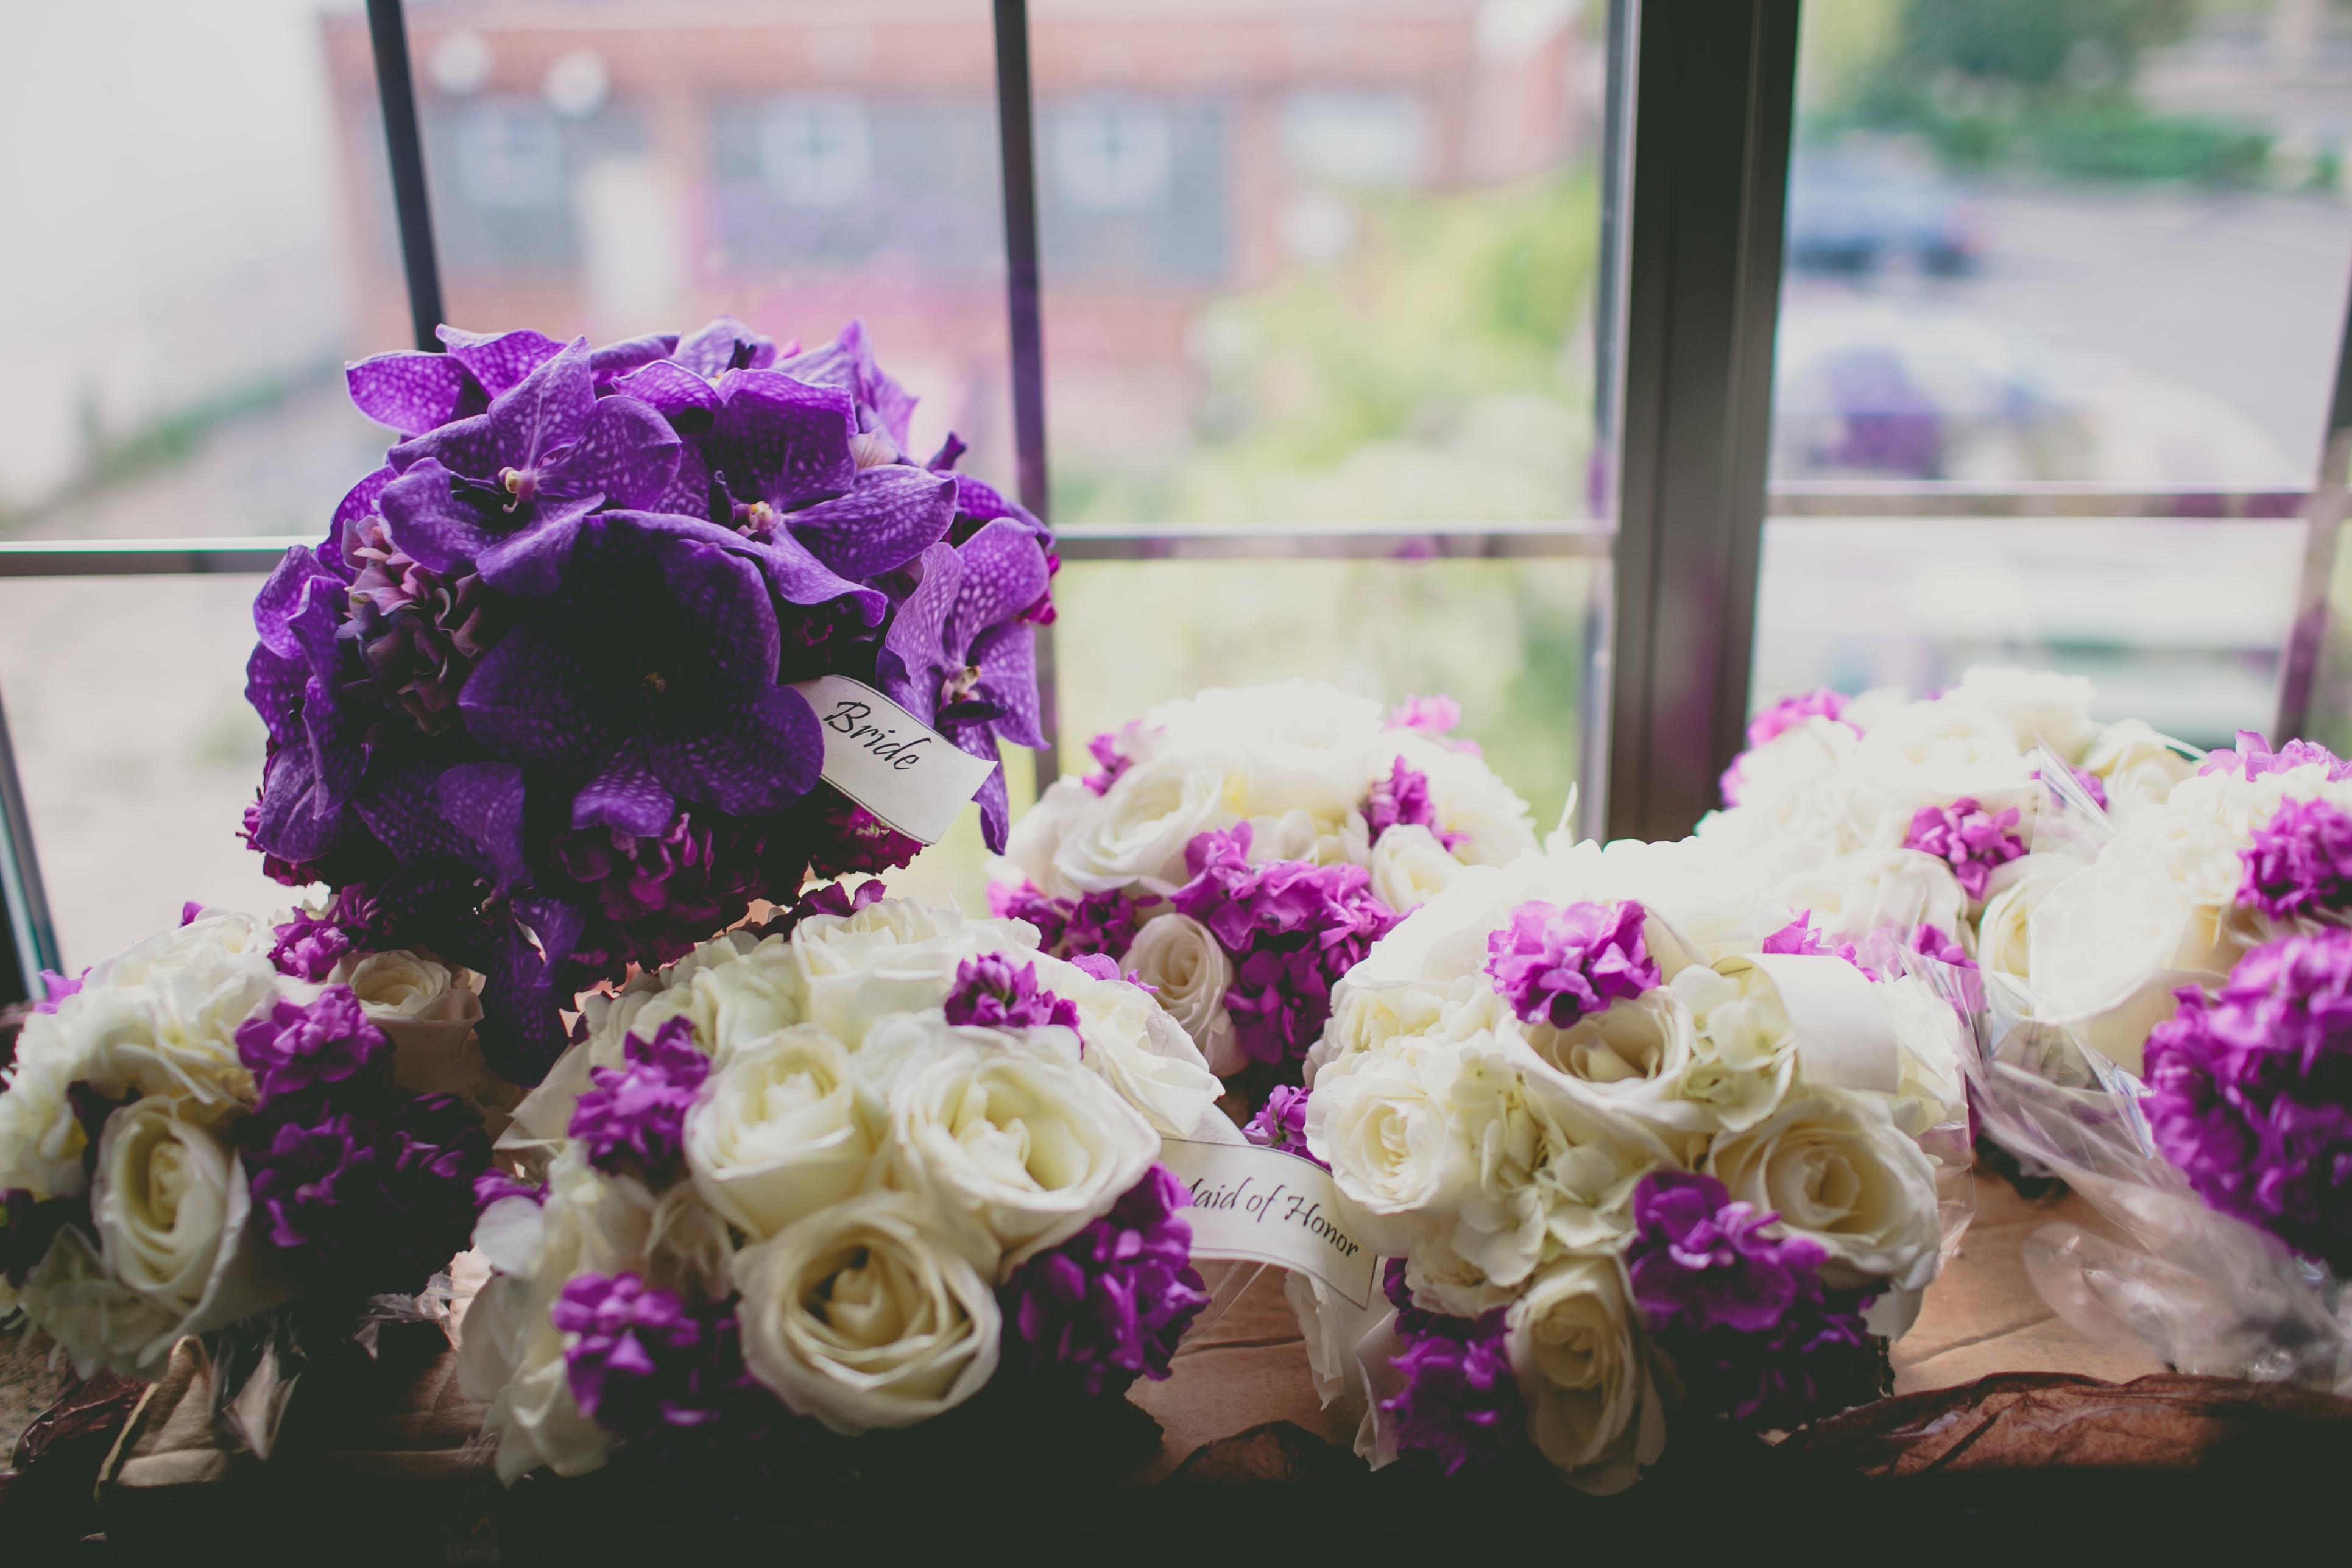 art-of-perfection-event-design-luxury-destination-wedding-planner-italy-purple-white-flower